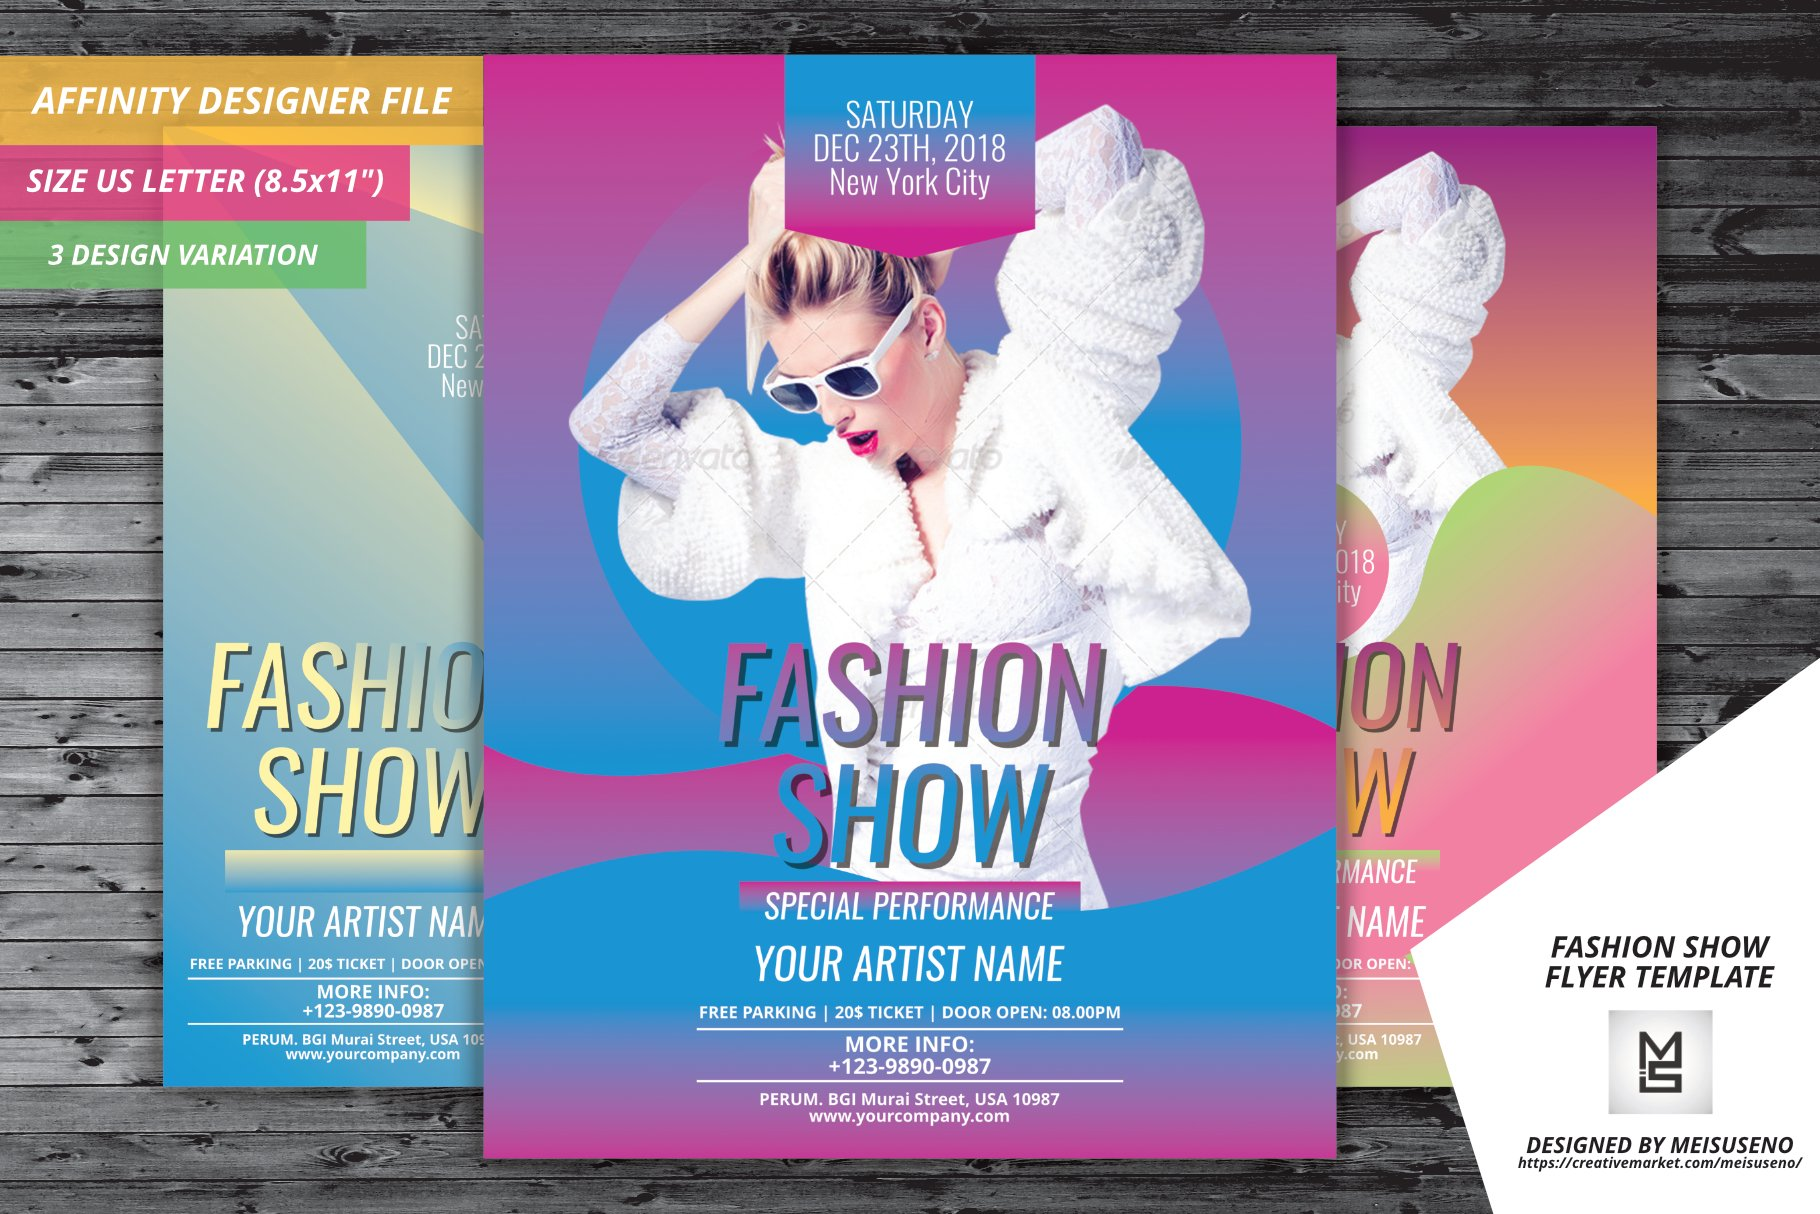 Fashion Show Flyer Template Flyer Templates Creative Market - Free fashion show flyer template